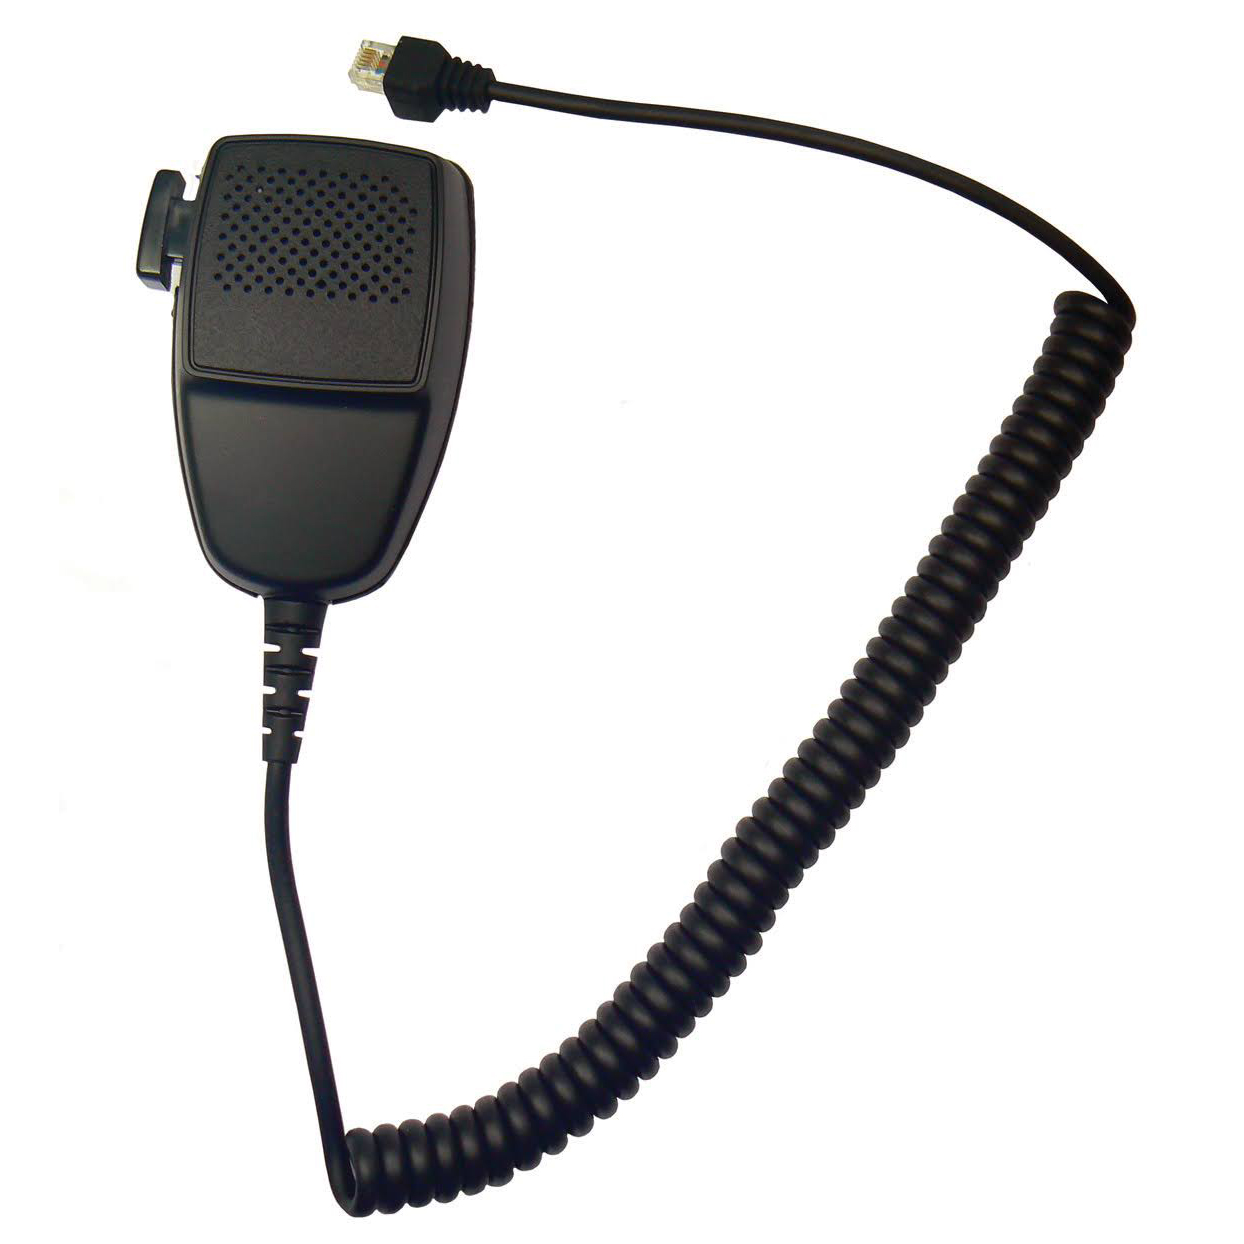 Fist microphone or Radio Airwaves Tetra